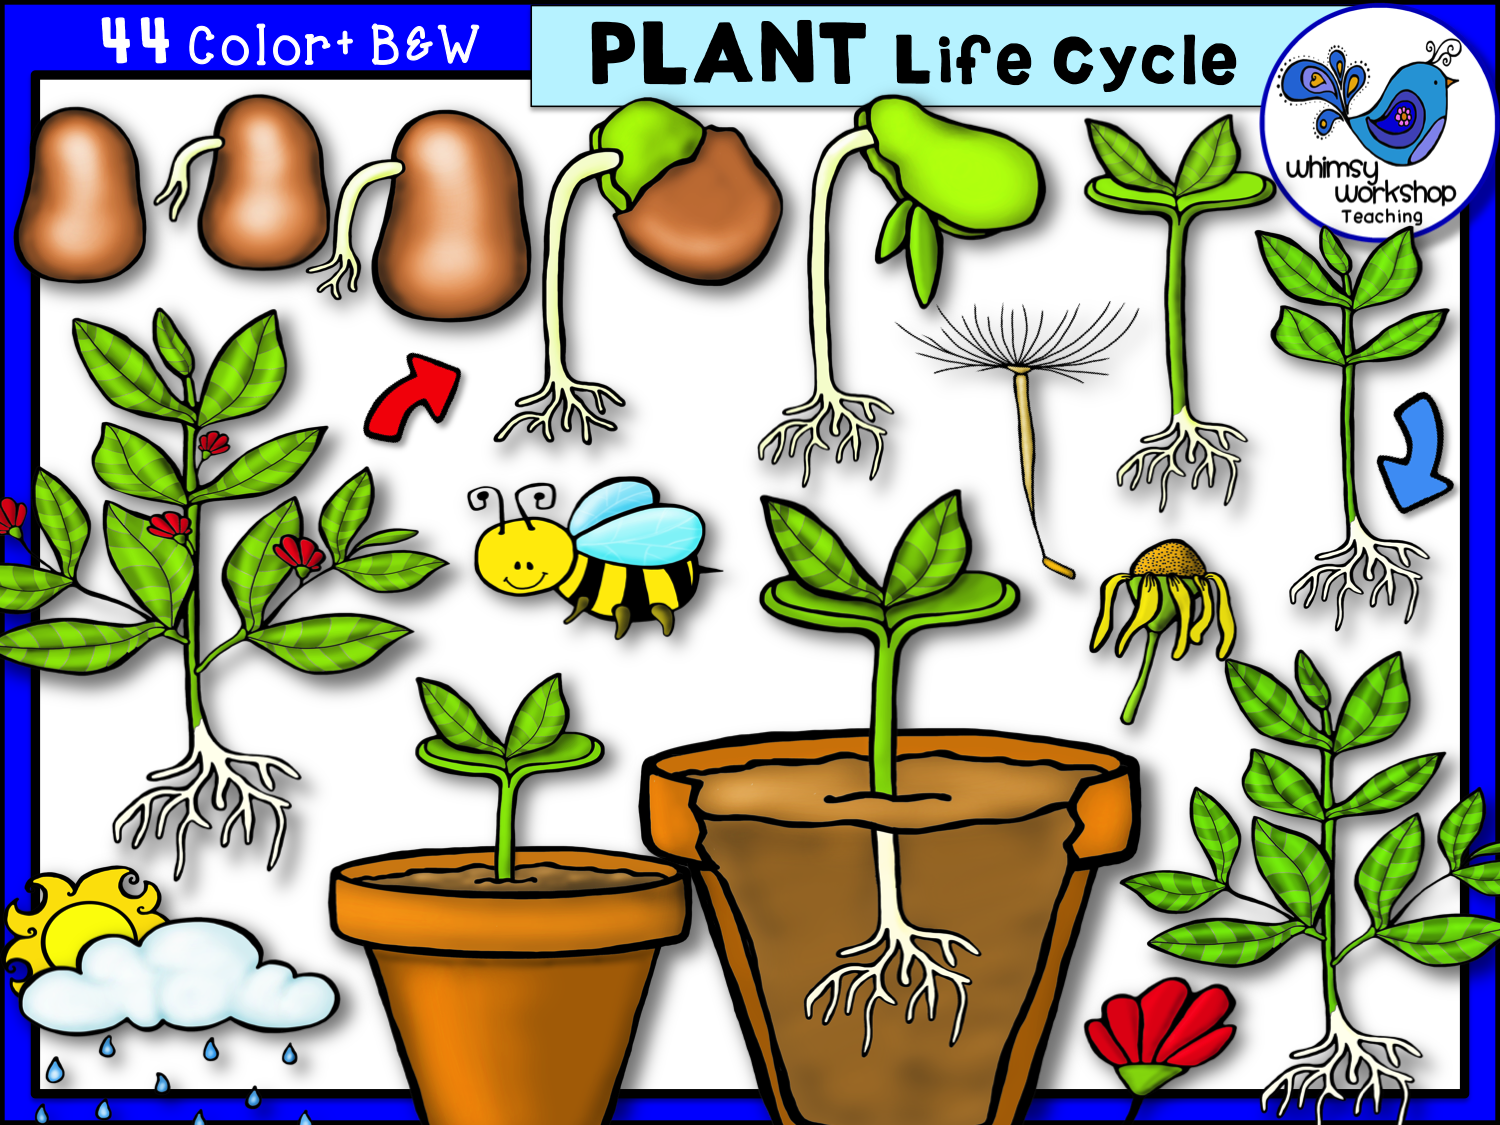 This Set Contains Everything You Need To Teach The Life Cycle Of A Plant All Images Are High